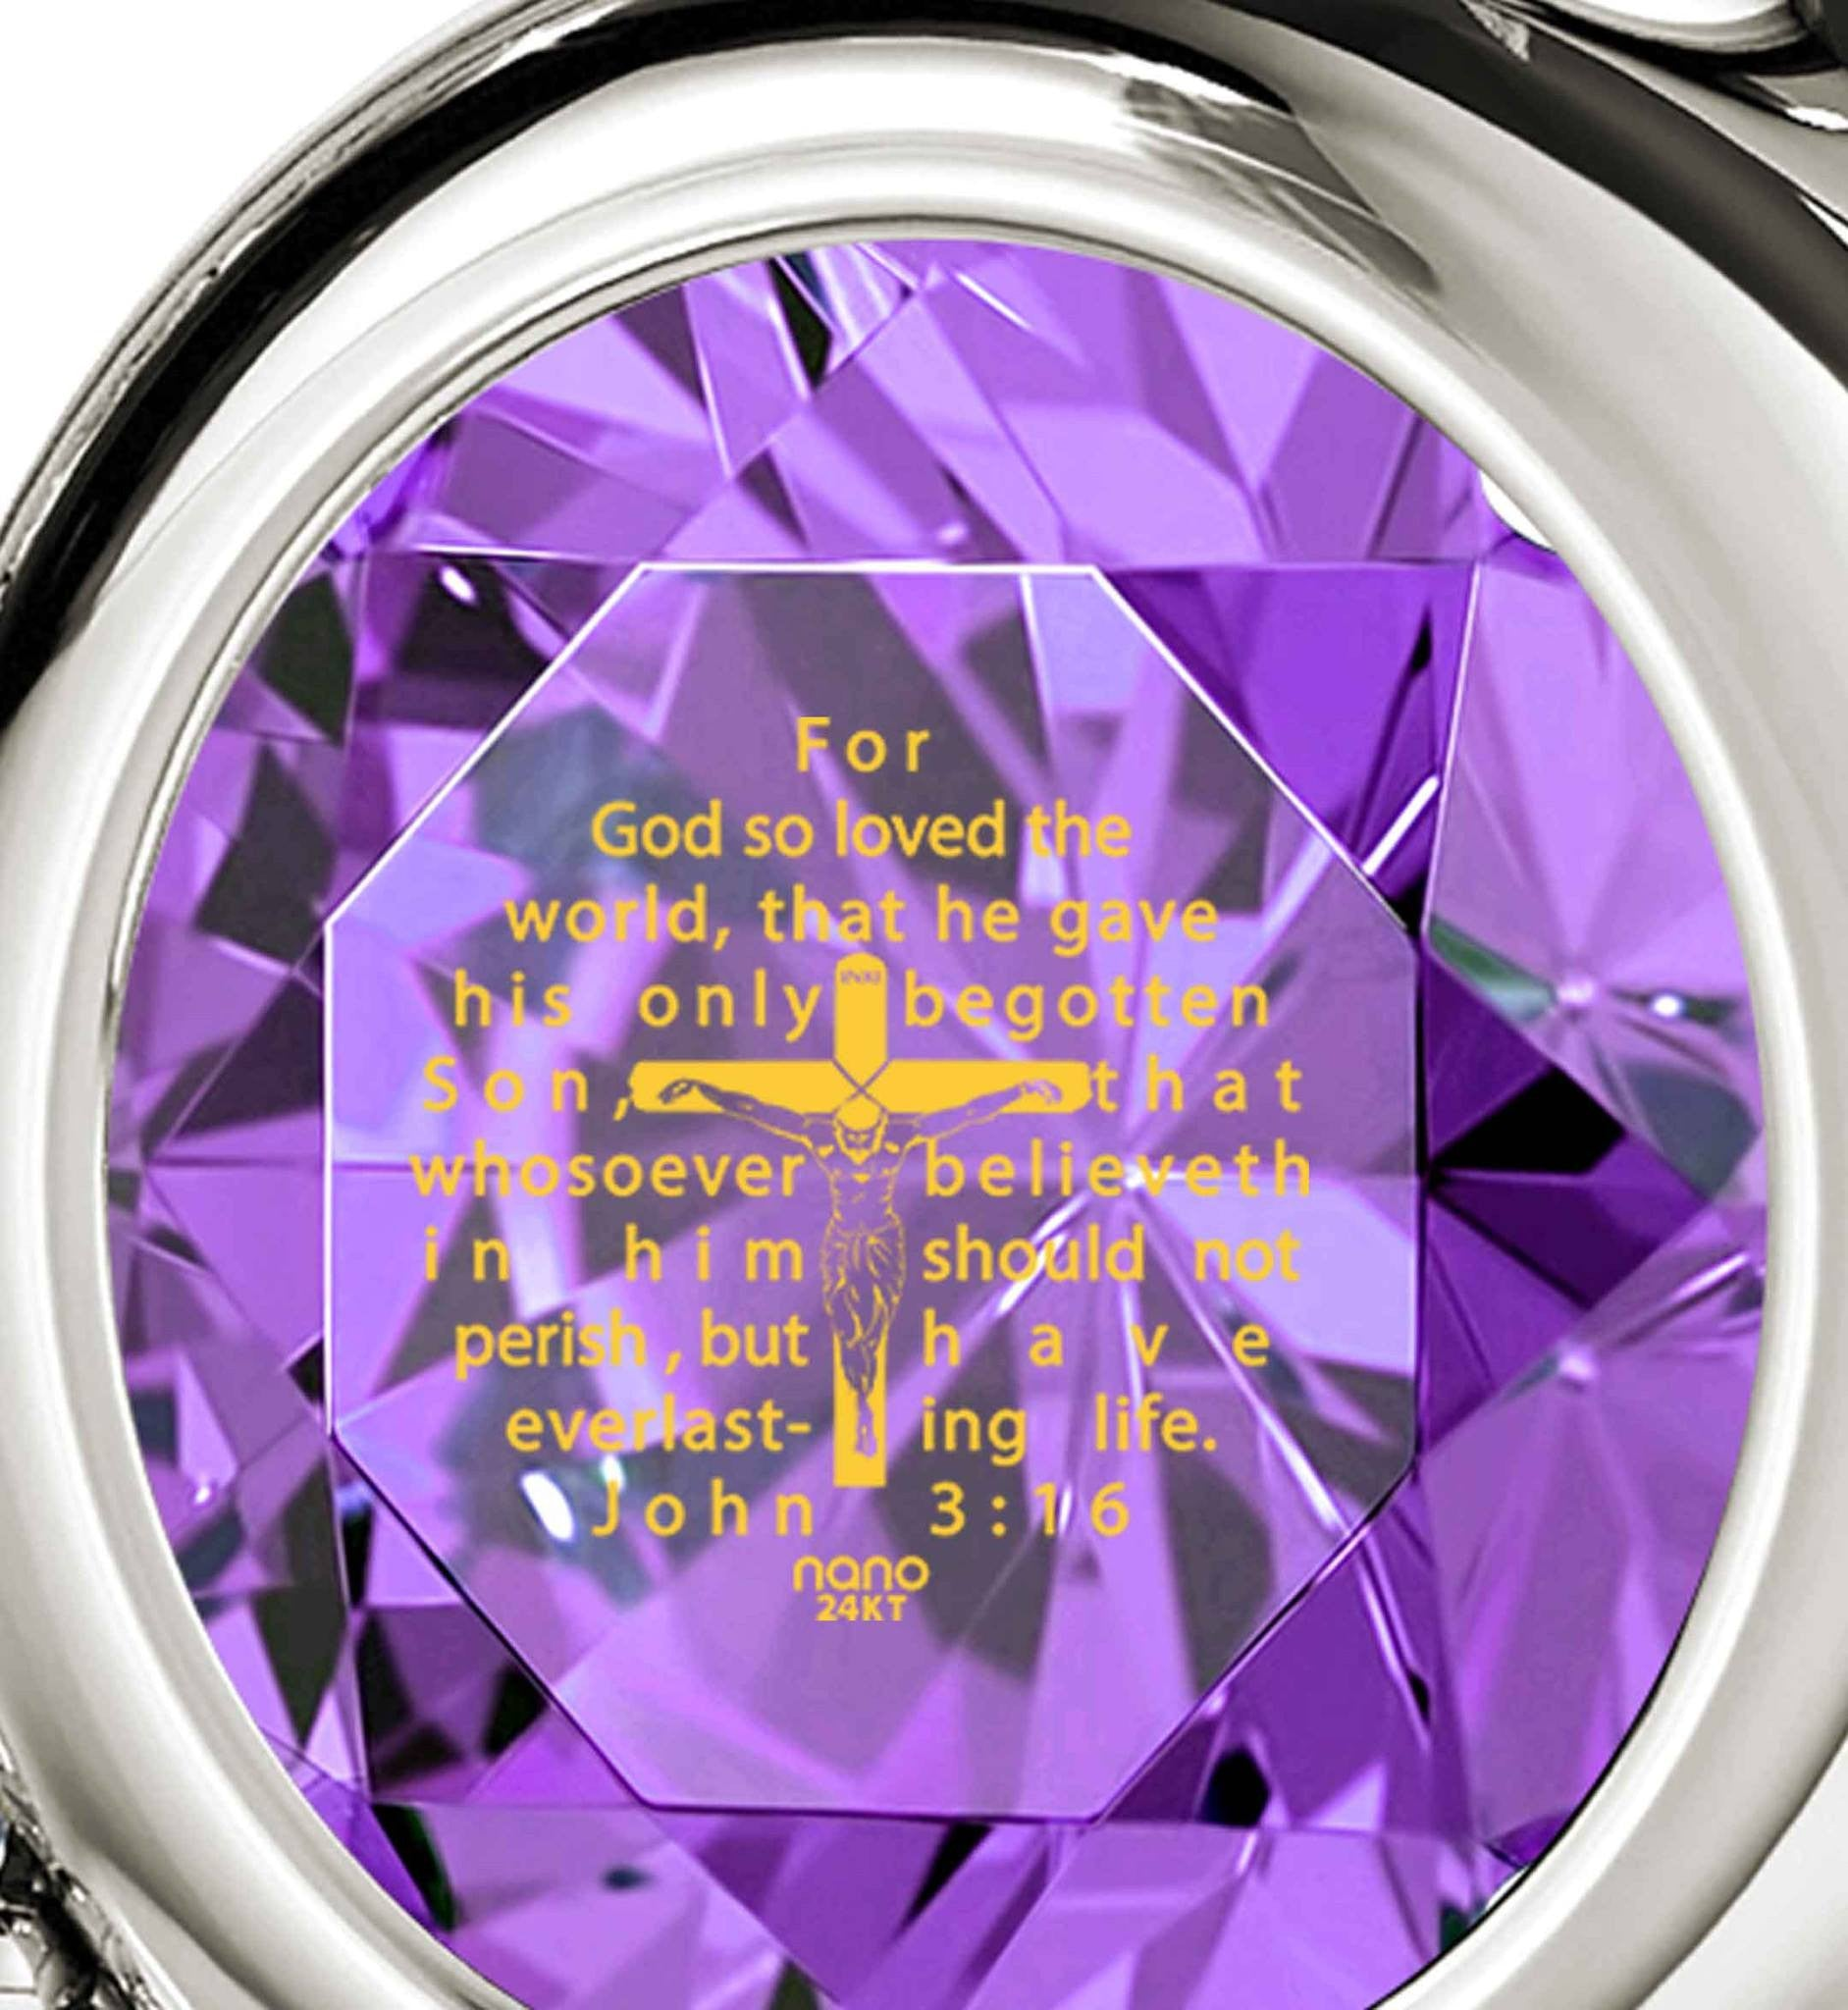 """John 3-16 Engraved in Pendant, ChristmasGifts for Sister, AnniversaryPresents for Her, PurplePendant"""